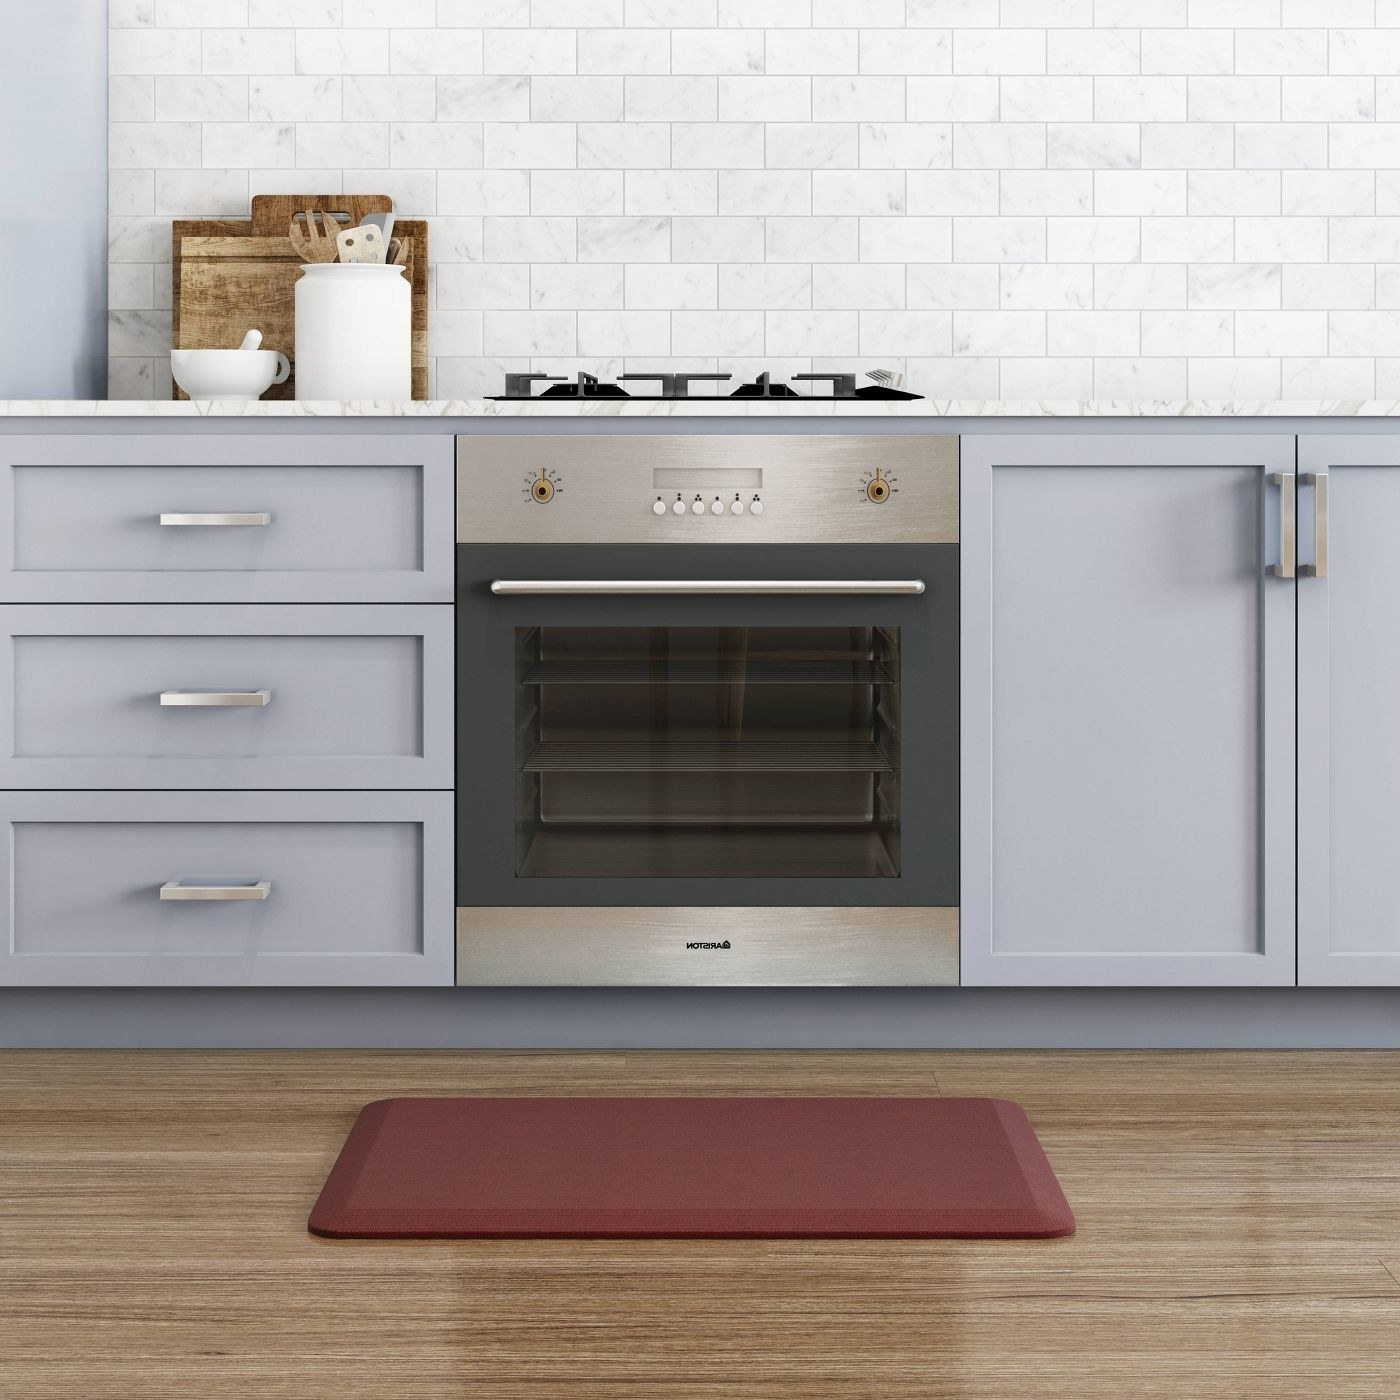 red anti fatigue mat in front of a stove